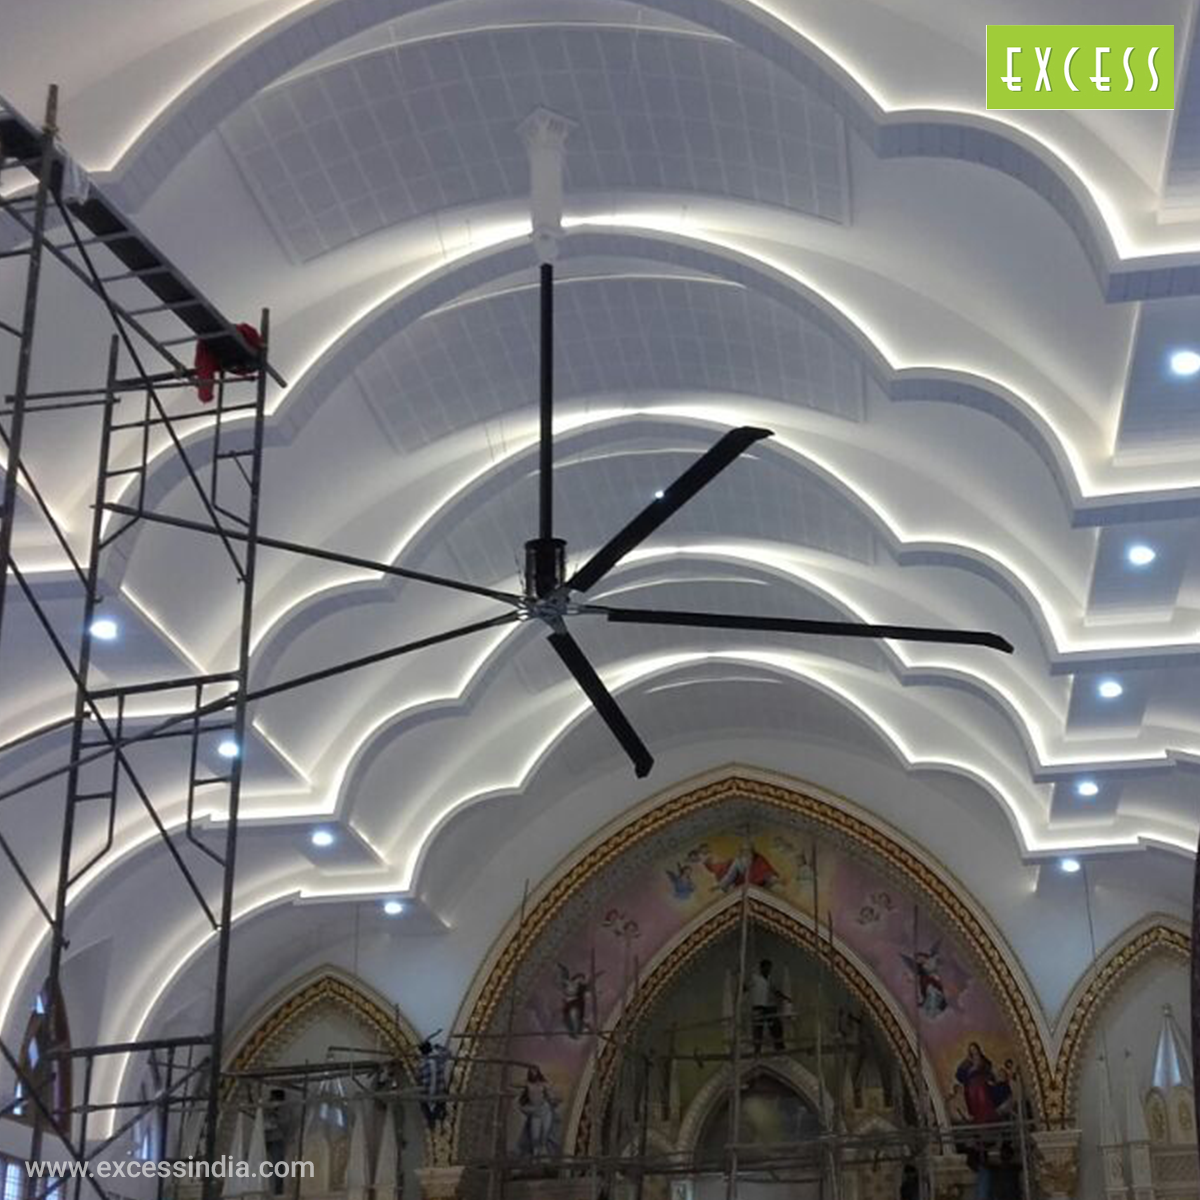 Church Big HVLS Fans - Excess India